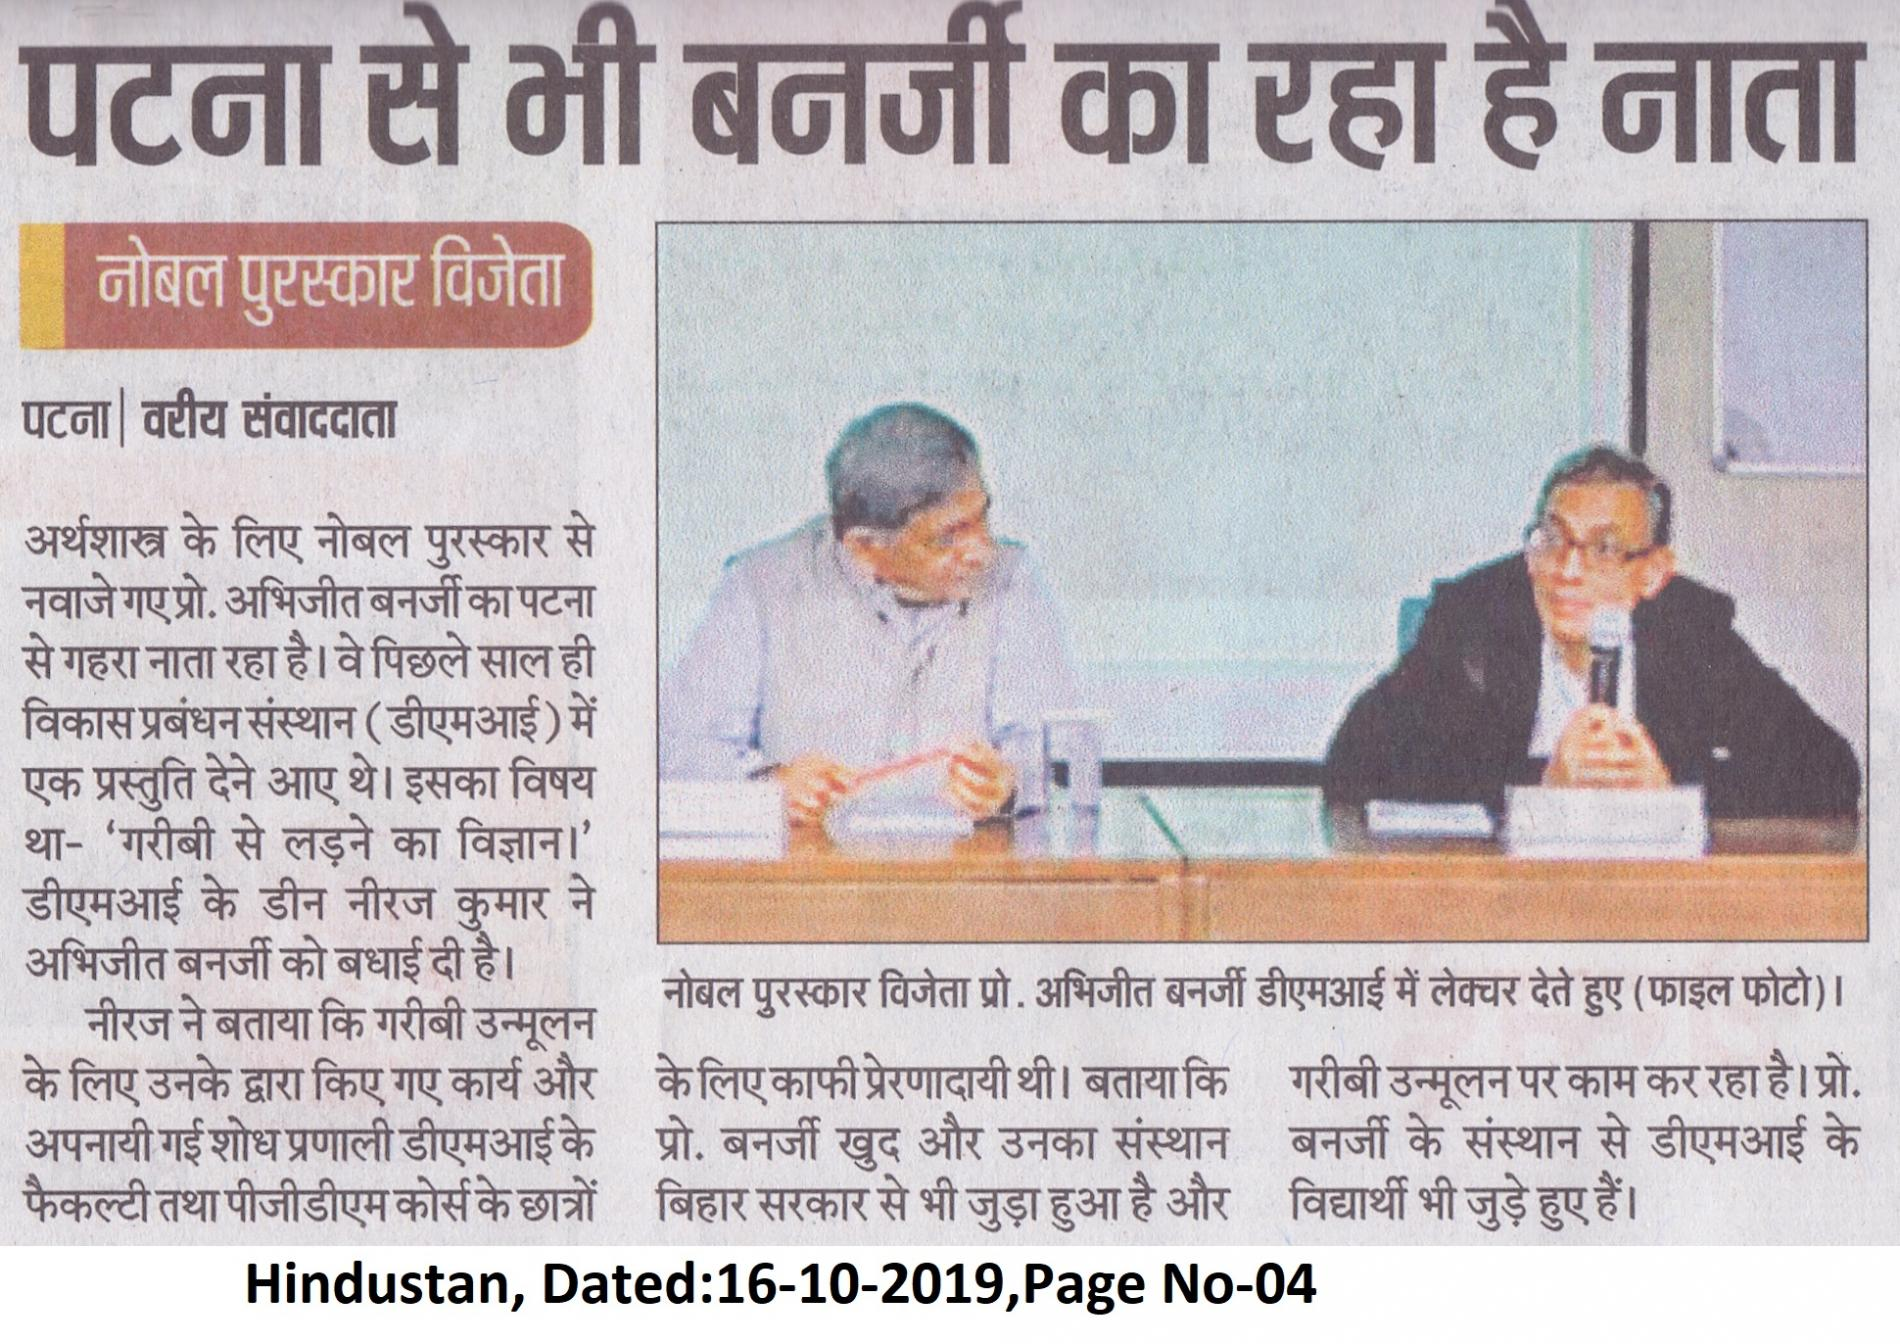 Hindustan, dated 16-Oct-2019, Page-04